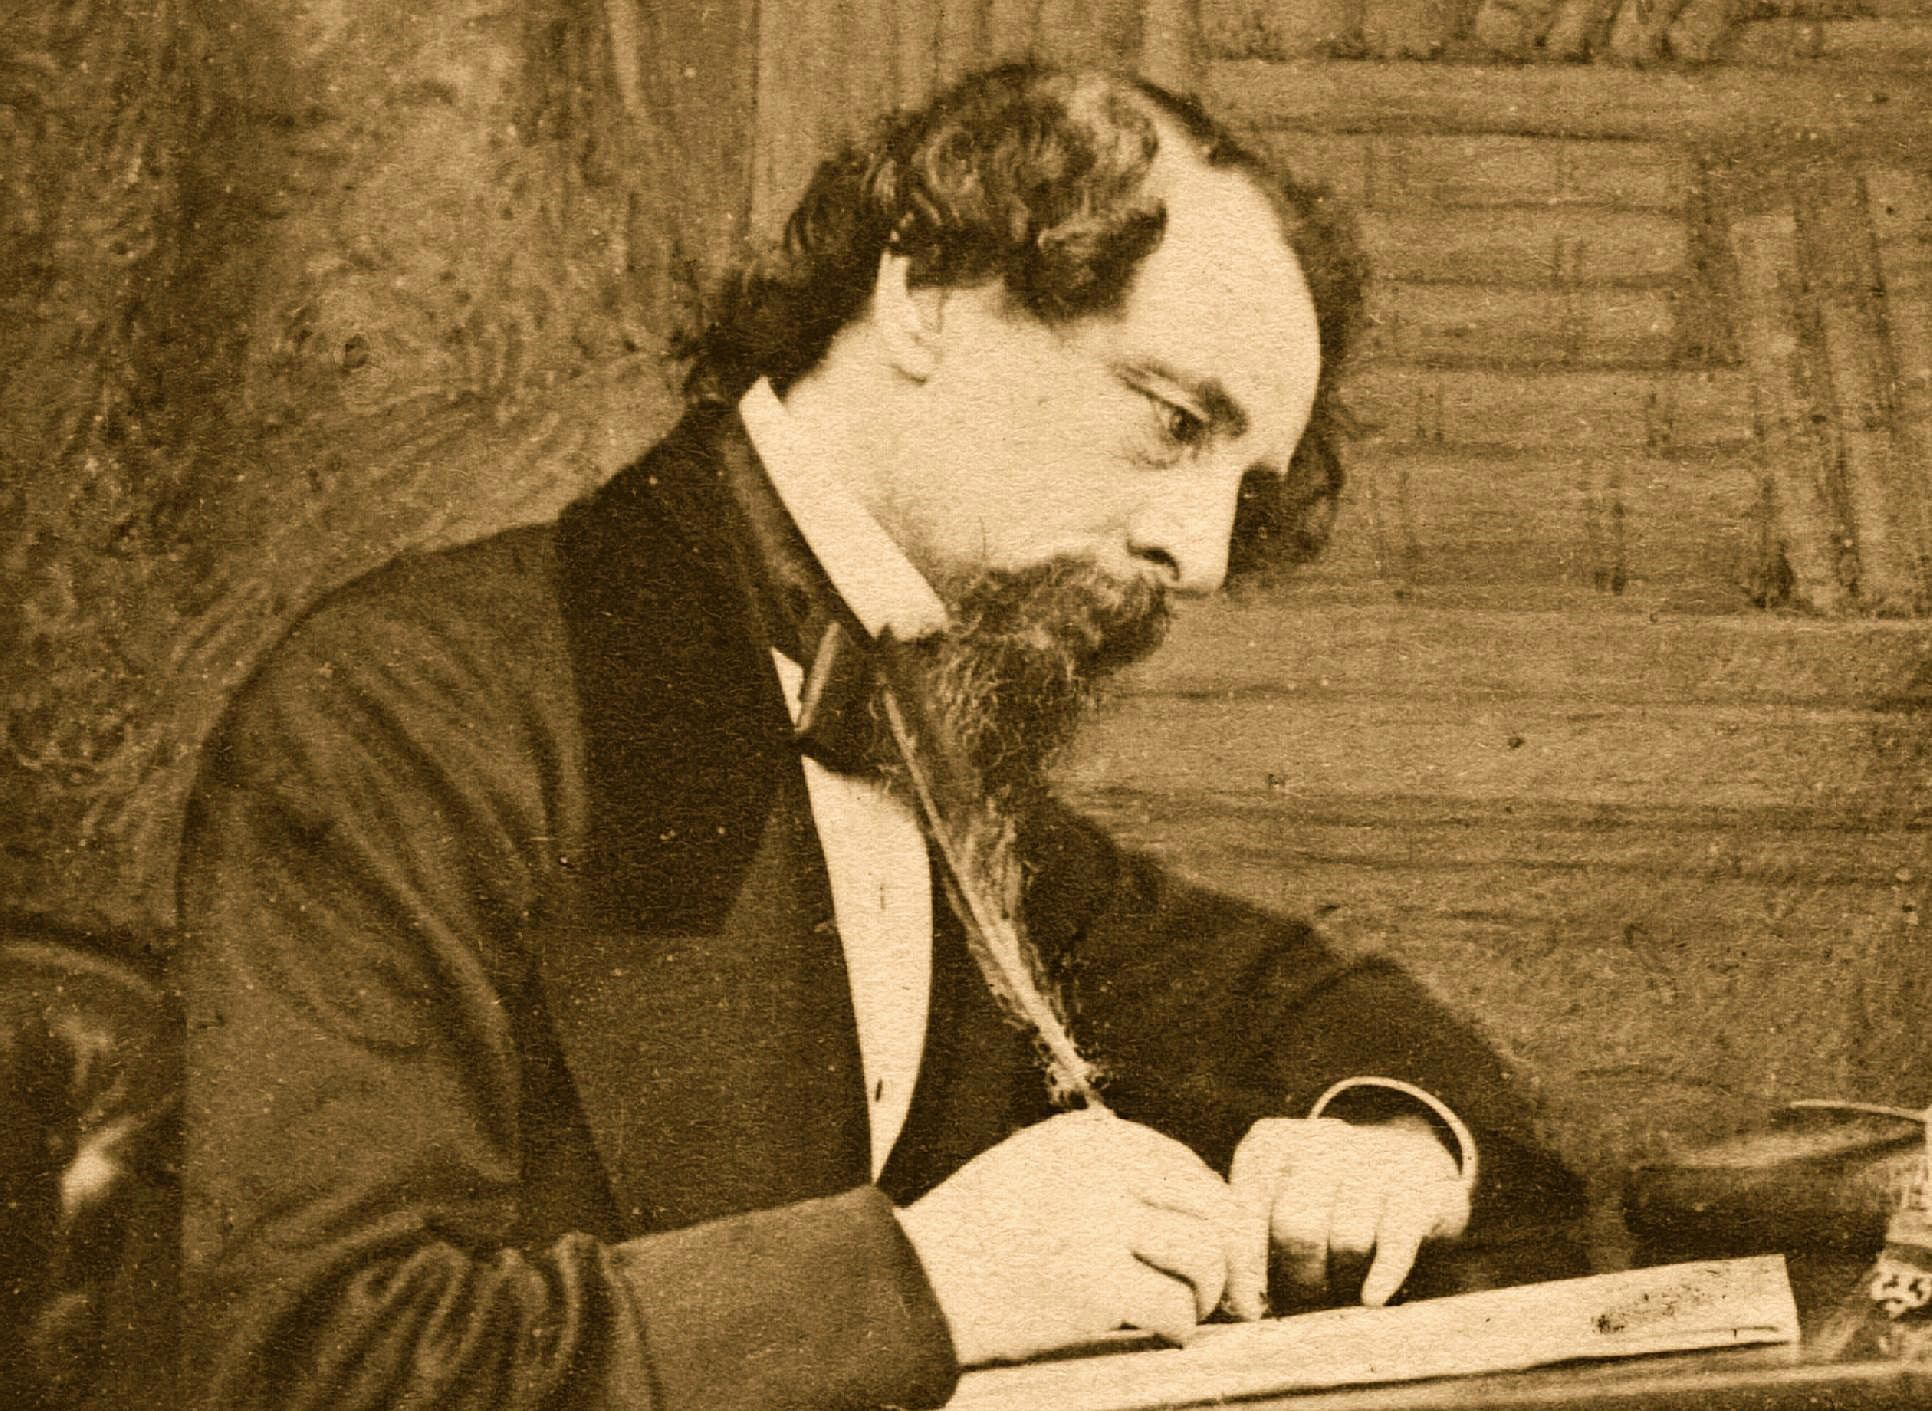 Notable Authors of the 19th Century